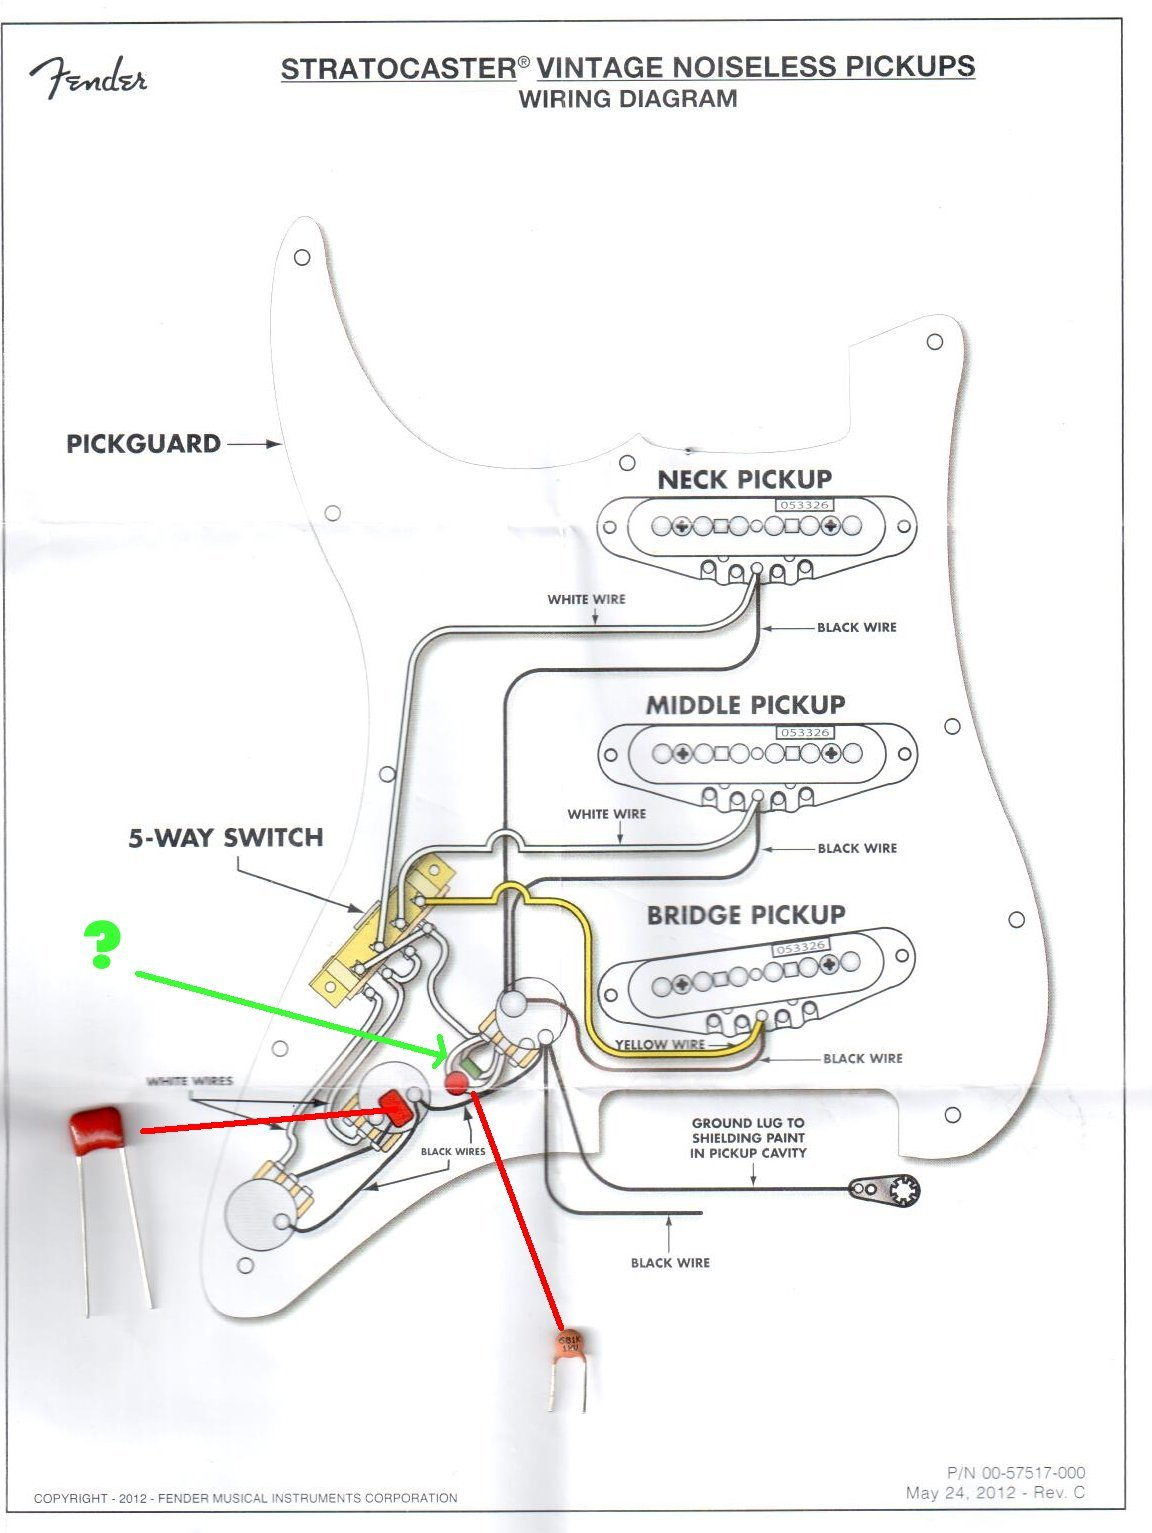 Fender stratocaster noiseless wiring diagram